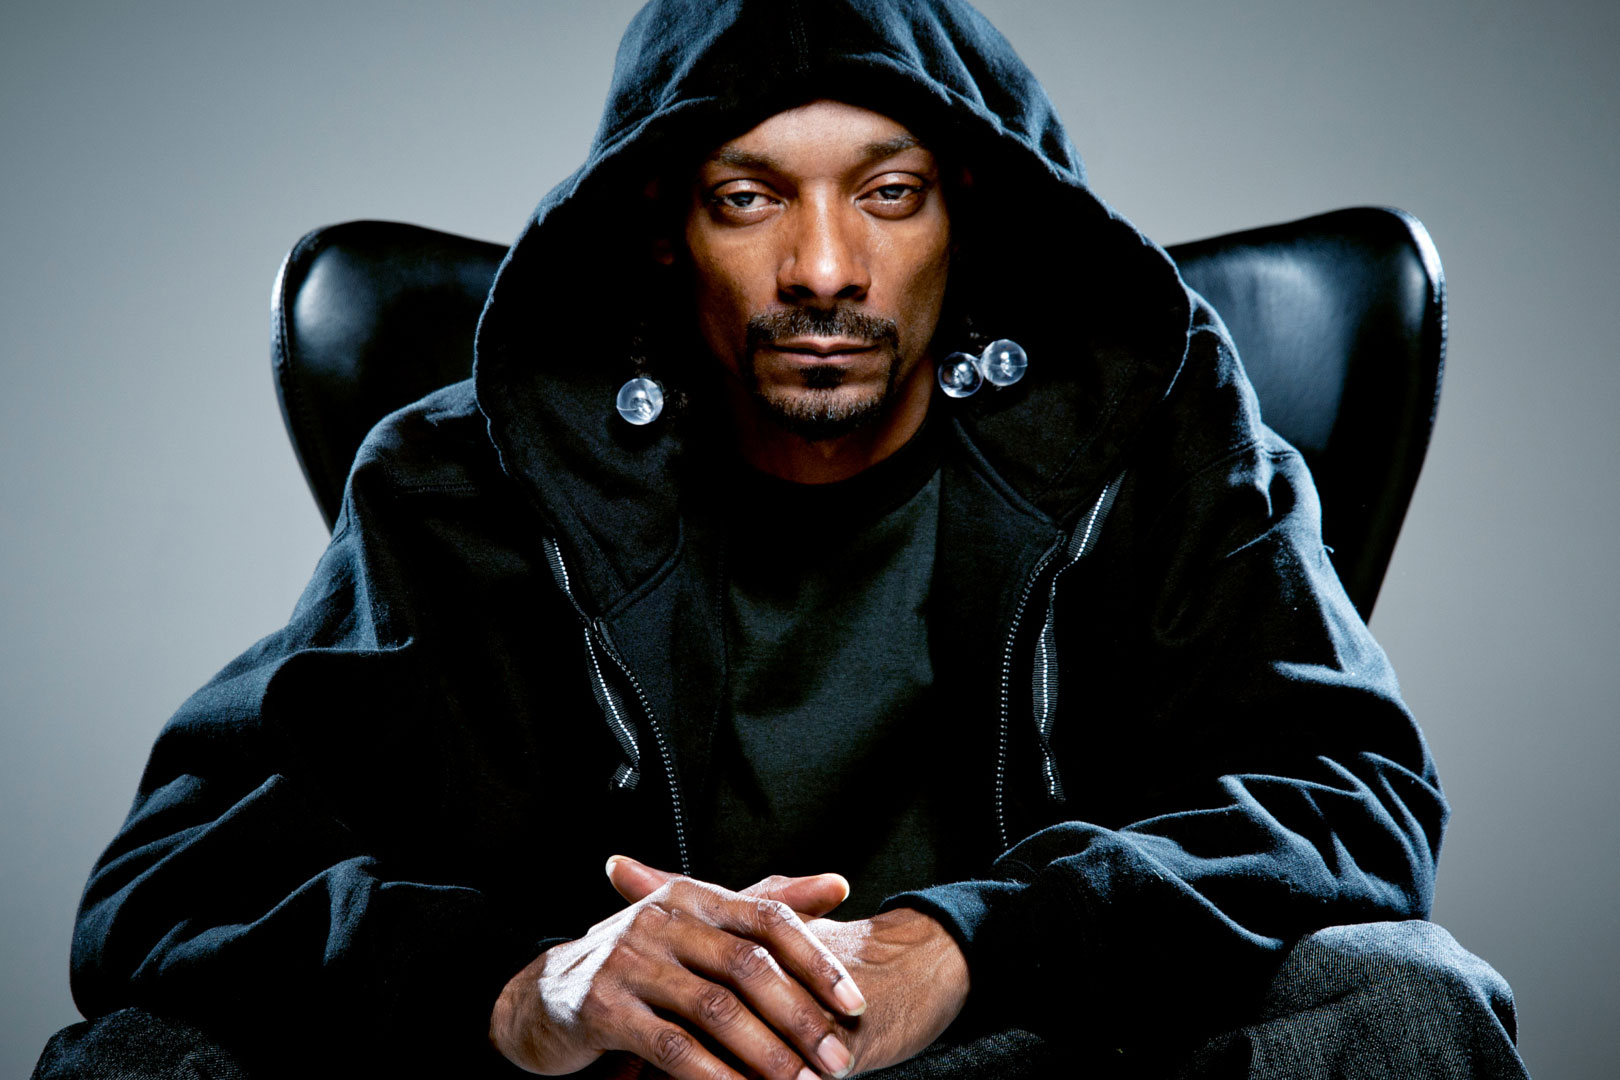 Snoop Dogg Announces Title/Drop Date Of Upcoming Album snoop dogg xbox playstation 0